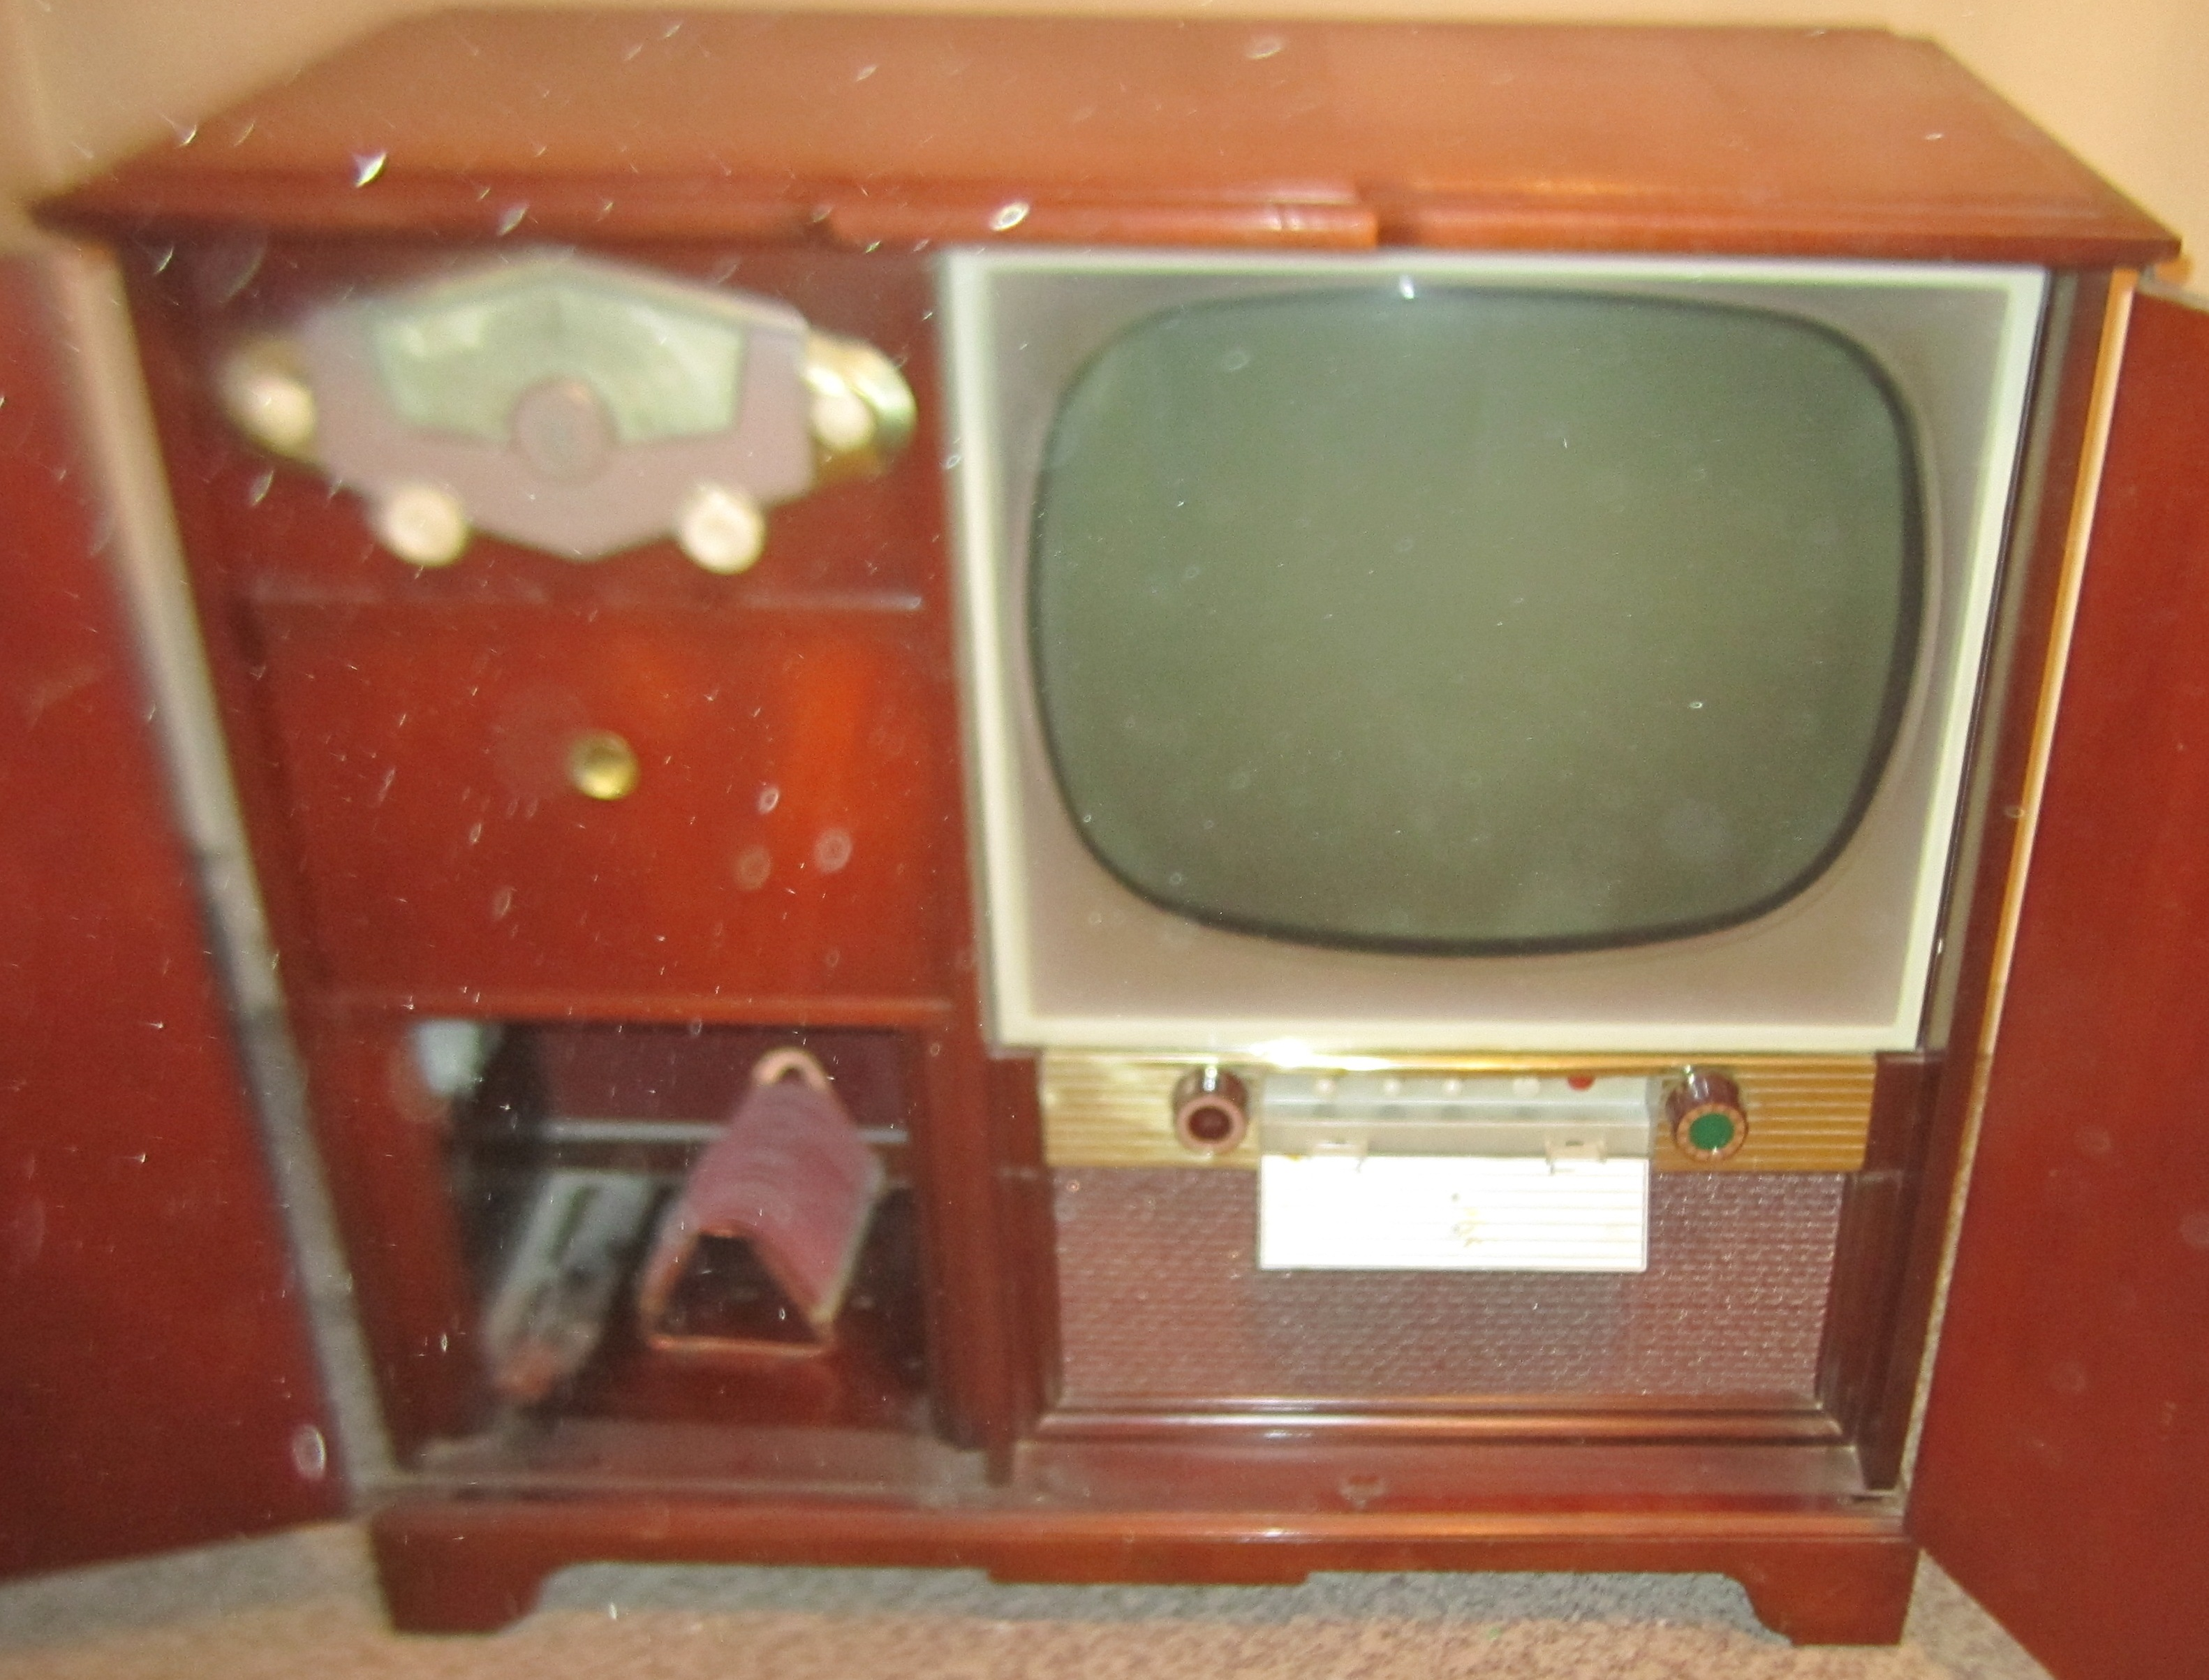 Zenith Console TV and Record Player antique appraisal